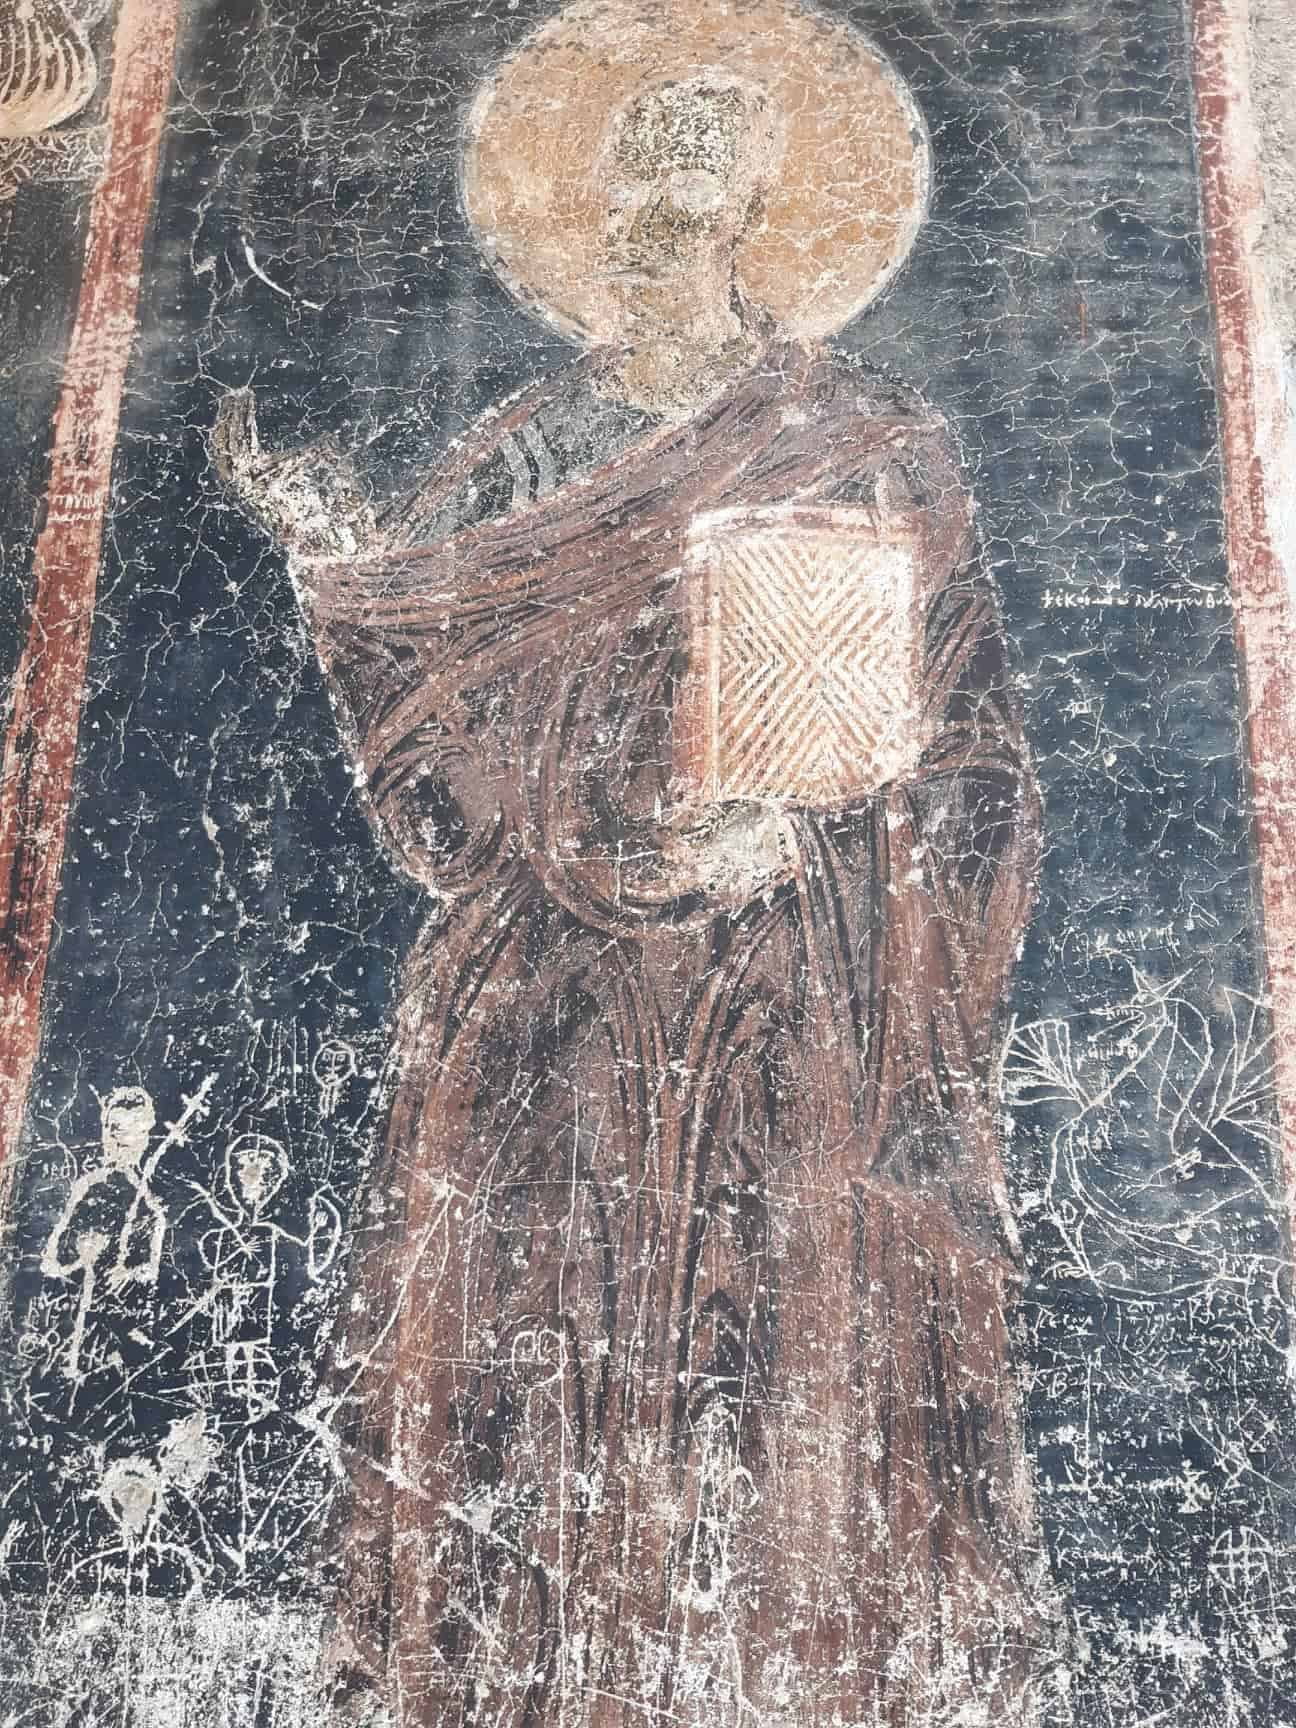 Worn Byzantine frescoes in ancient churches. The eyes were scratched out during the Ottoman occupation.